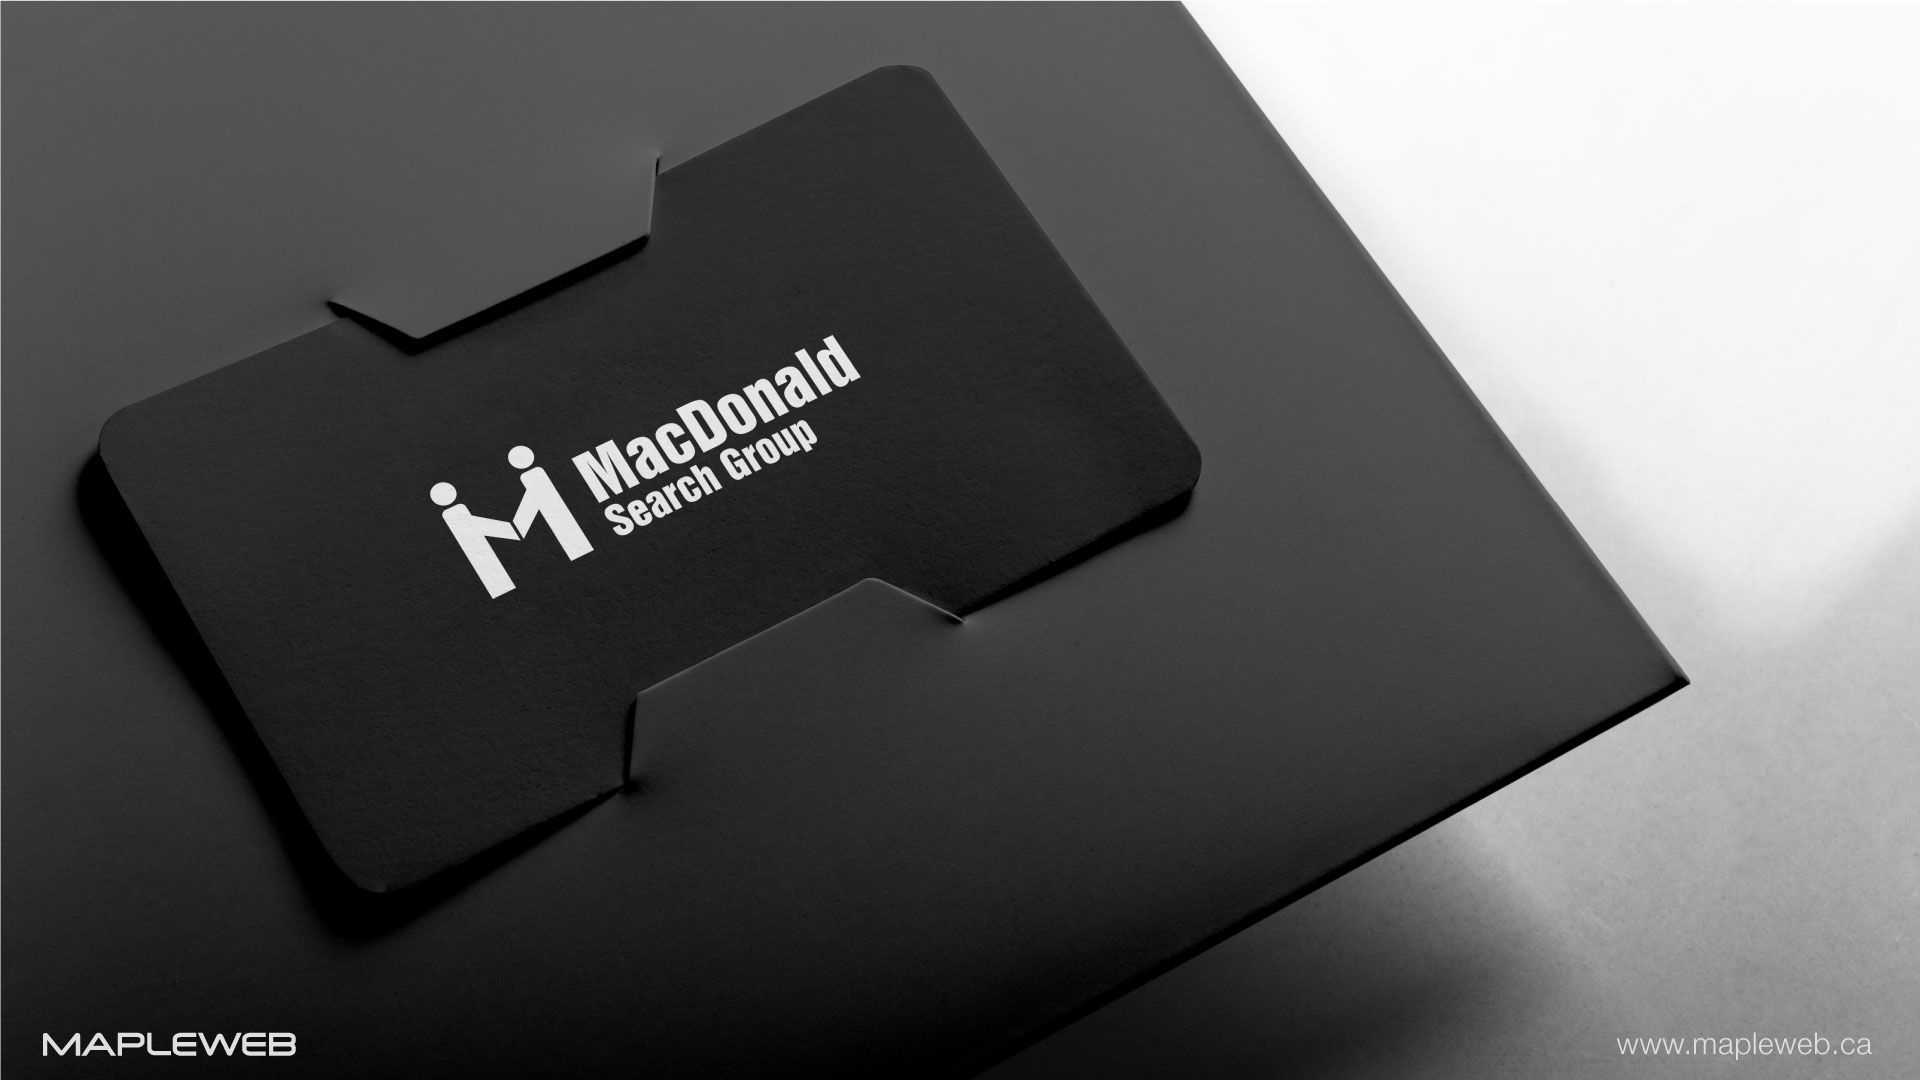 macdonald-search-group-brand-logo-design-by-mapleweb-vancouver-canada-business-card-mock